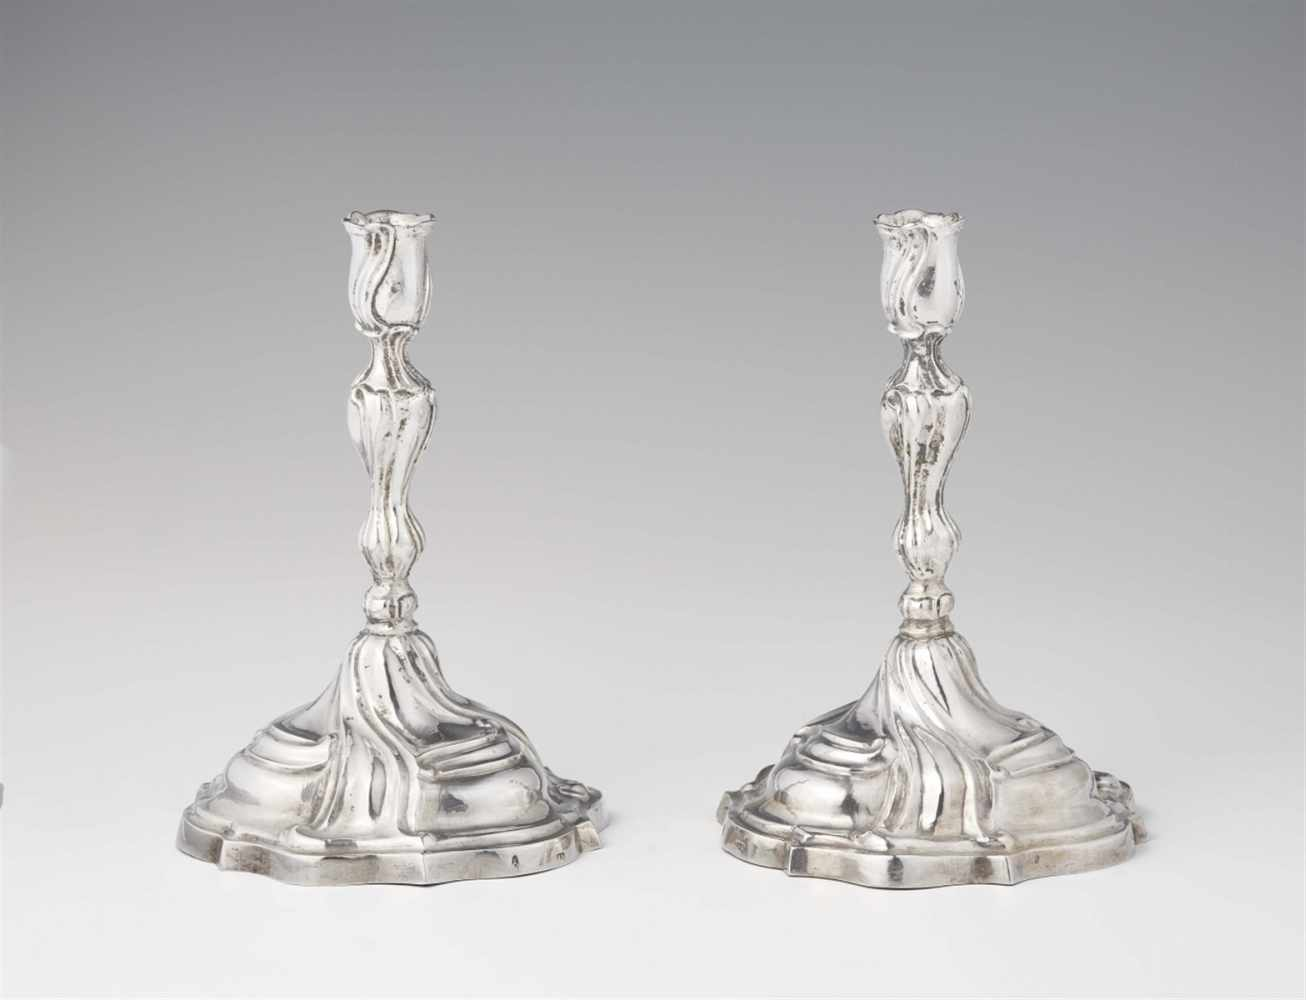 A pair of Augsburg silver candlesticks by Johann HeckenauerRound scalloped base supporting a twist